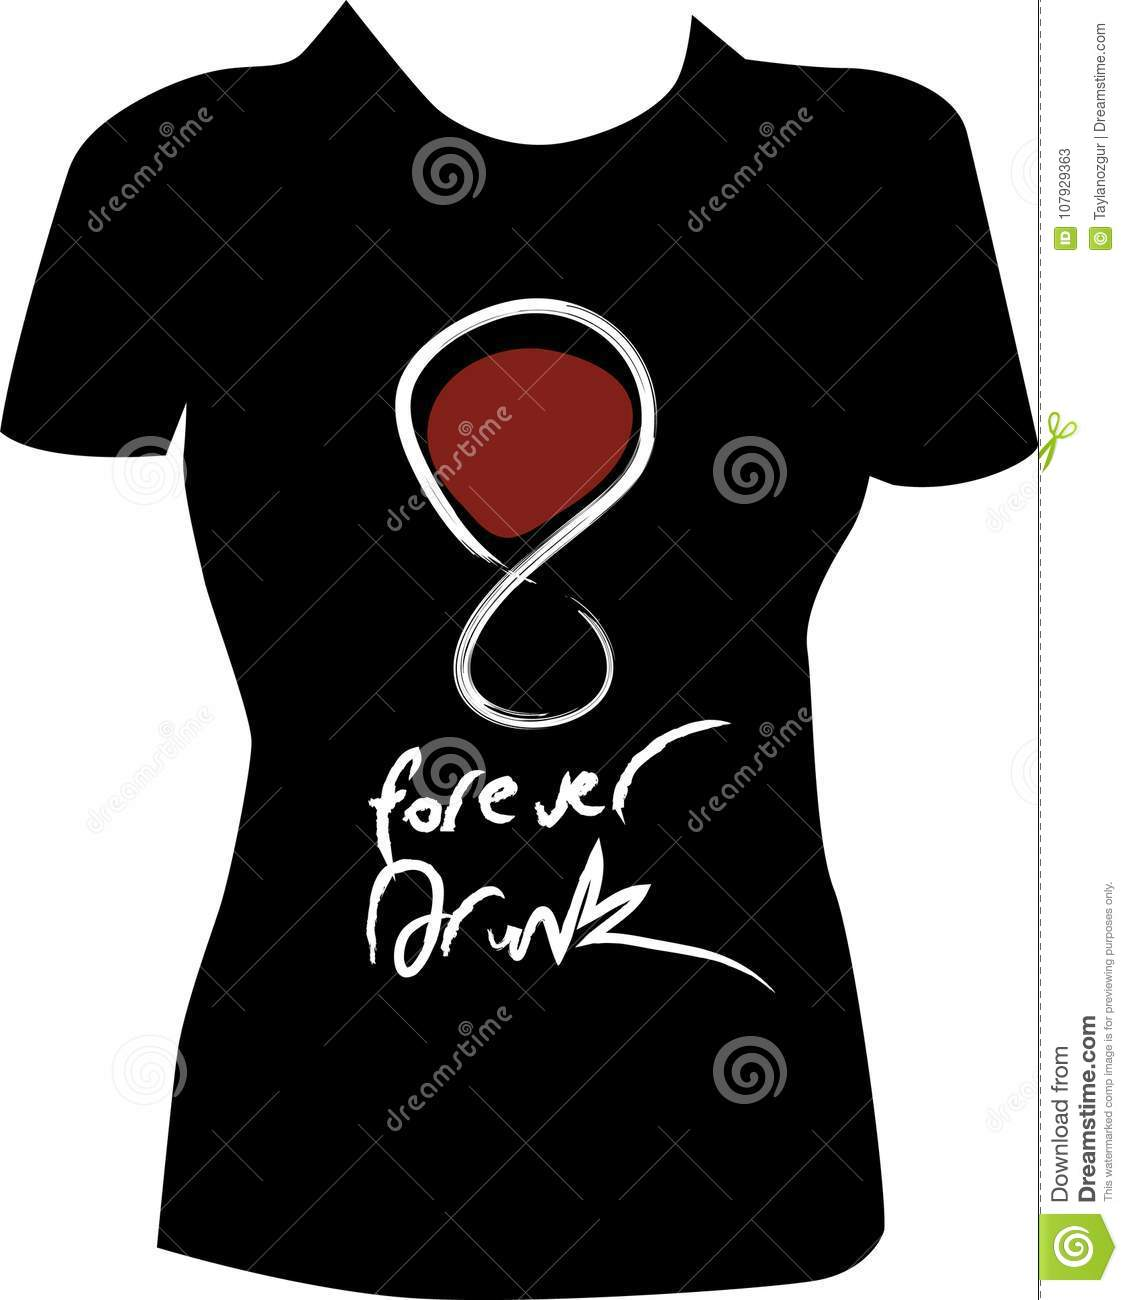 T-shirt design with wine glasses.